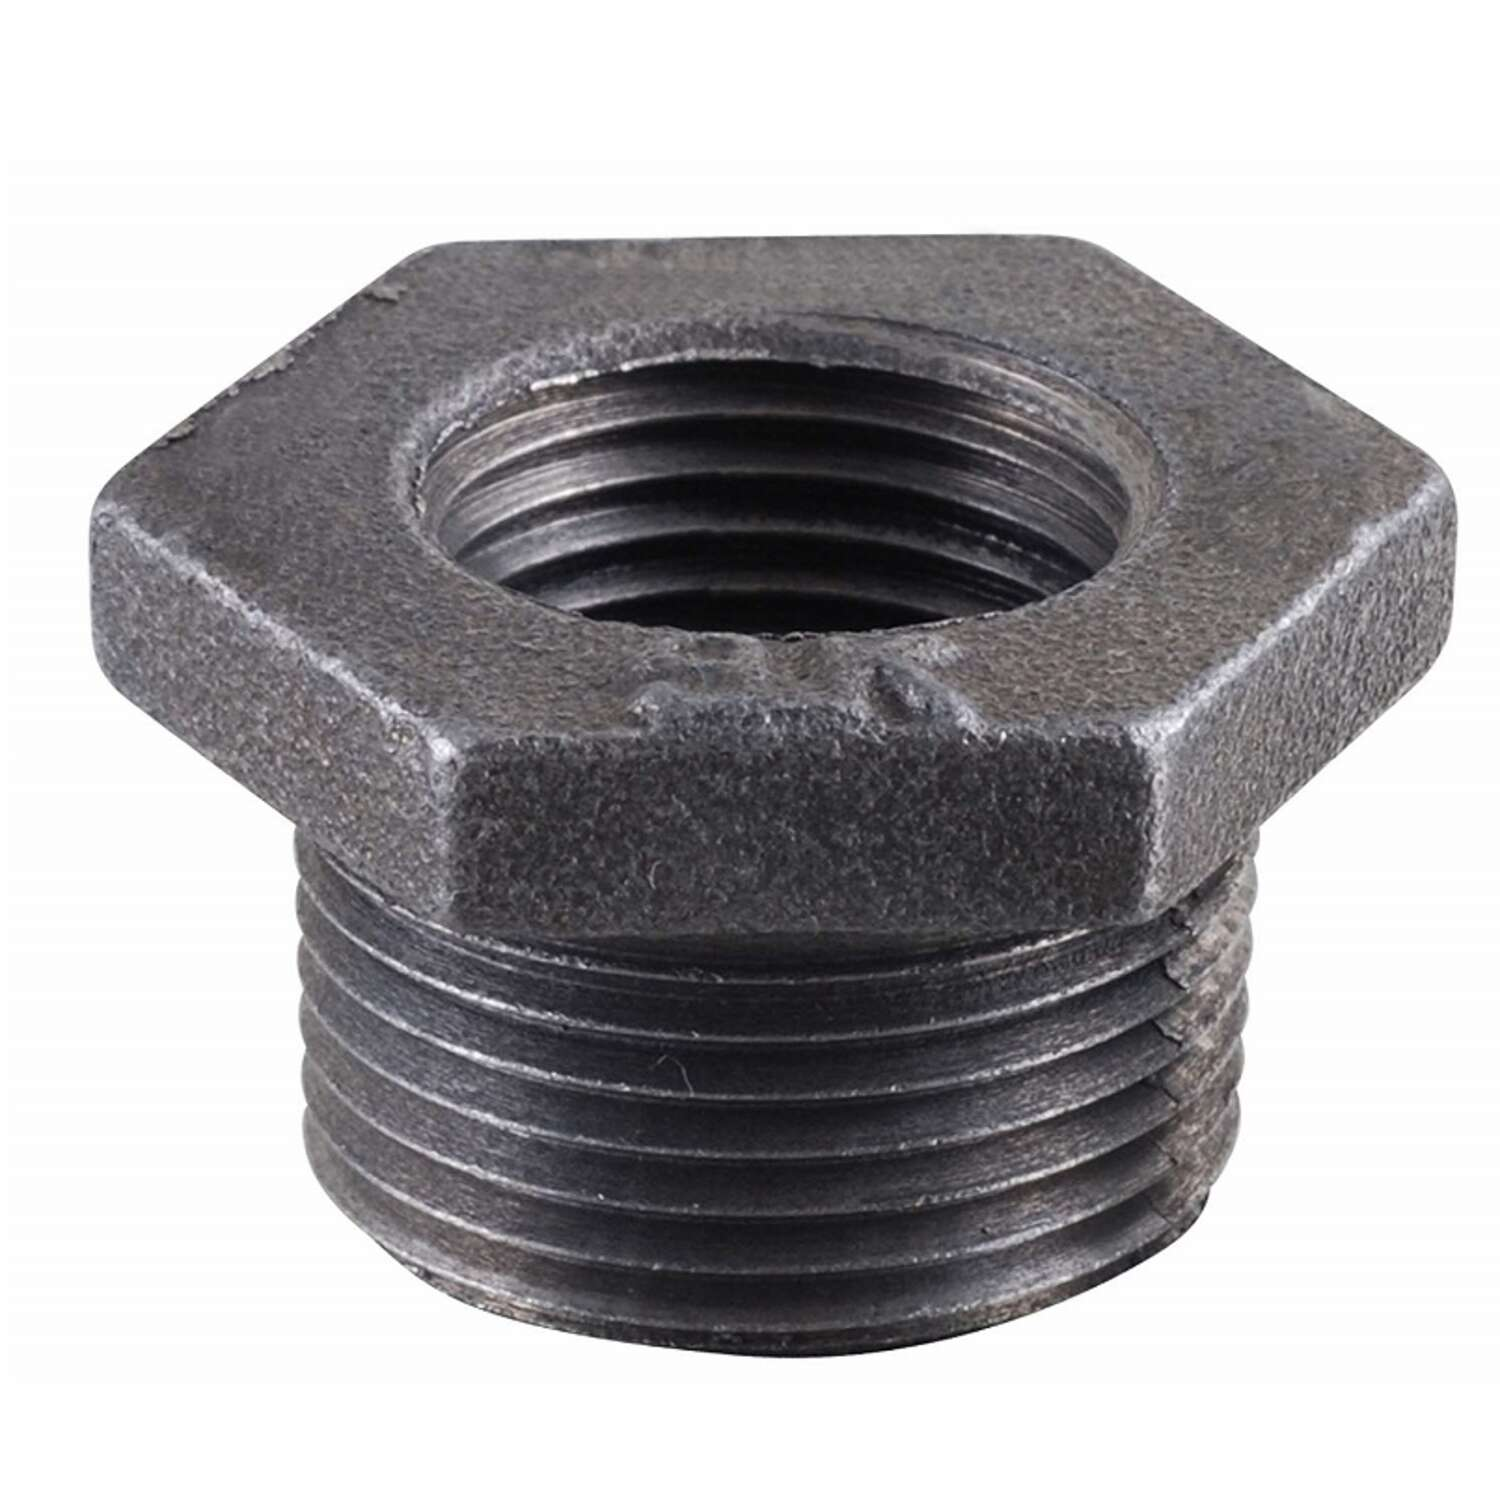 BK Products 2 in. MPT x 1-1/4 in. Dia. FPT Black Malleable Iron Hex Bushing